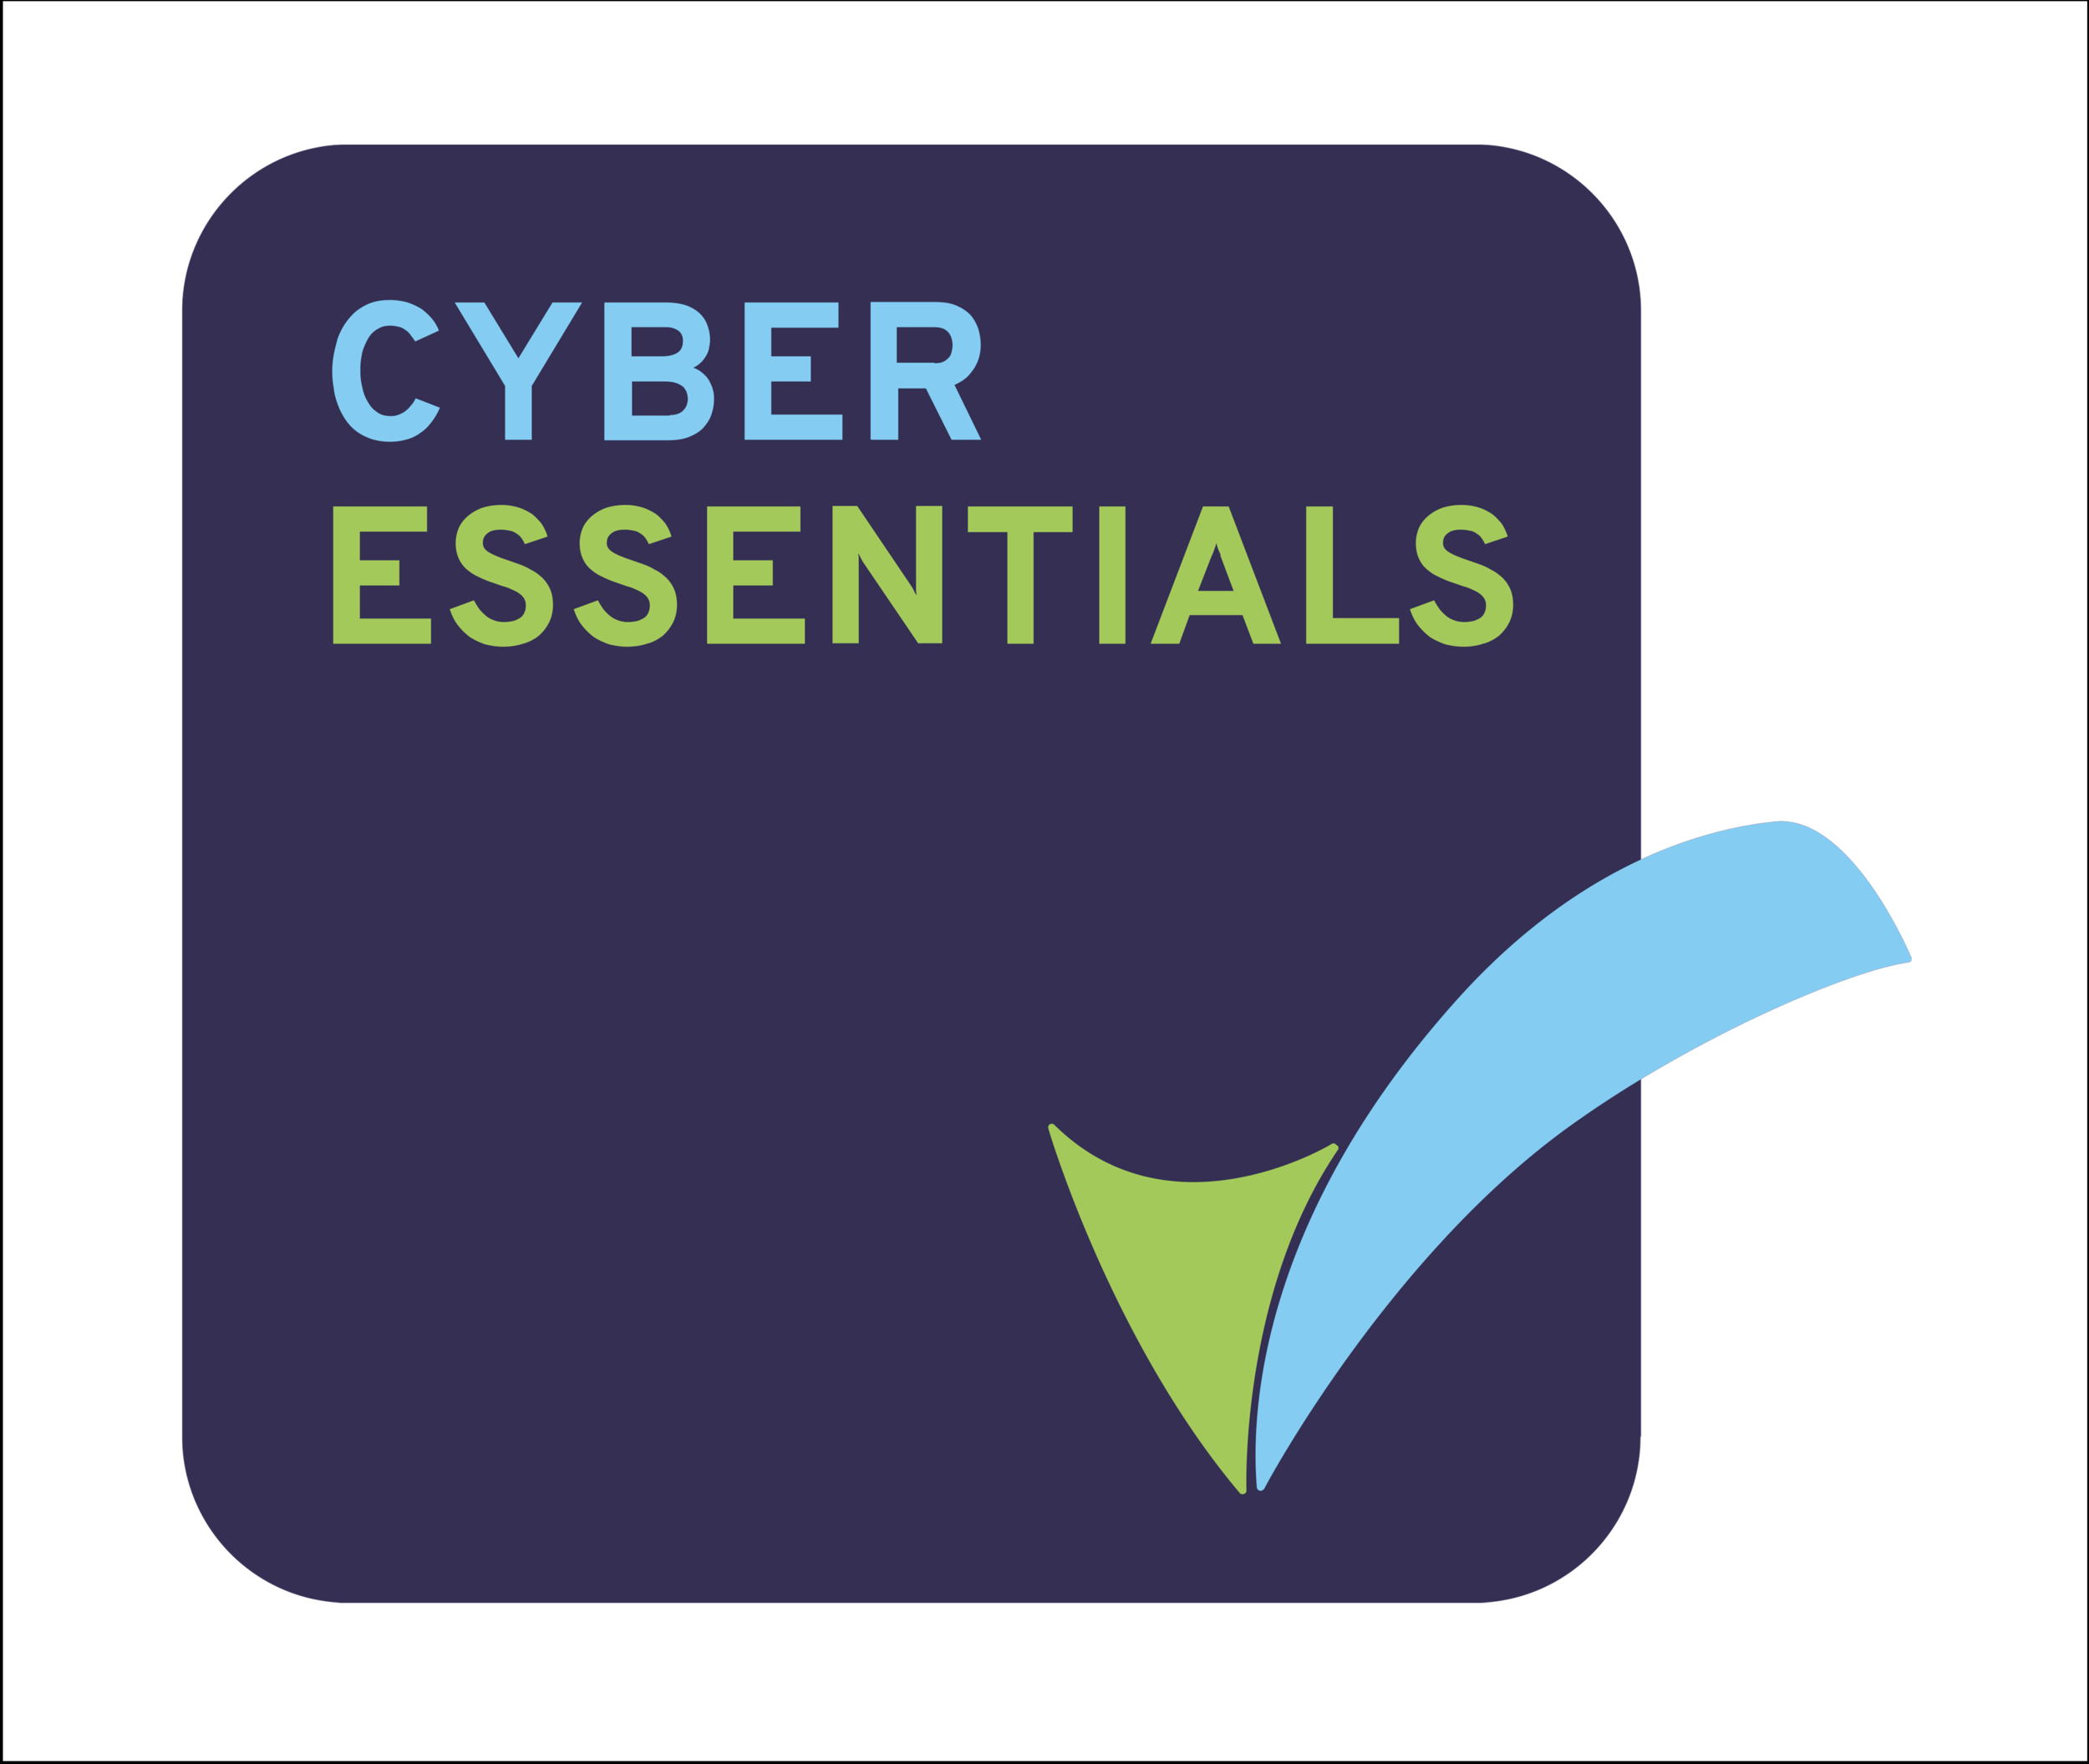 cyber-essentials-badge-high-res copy wbg.png